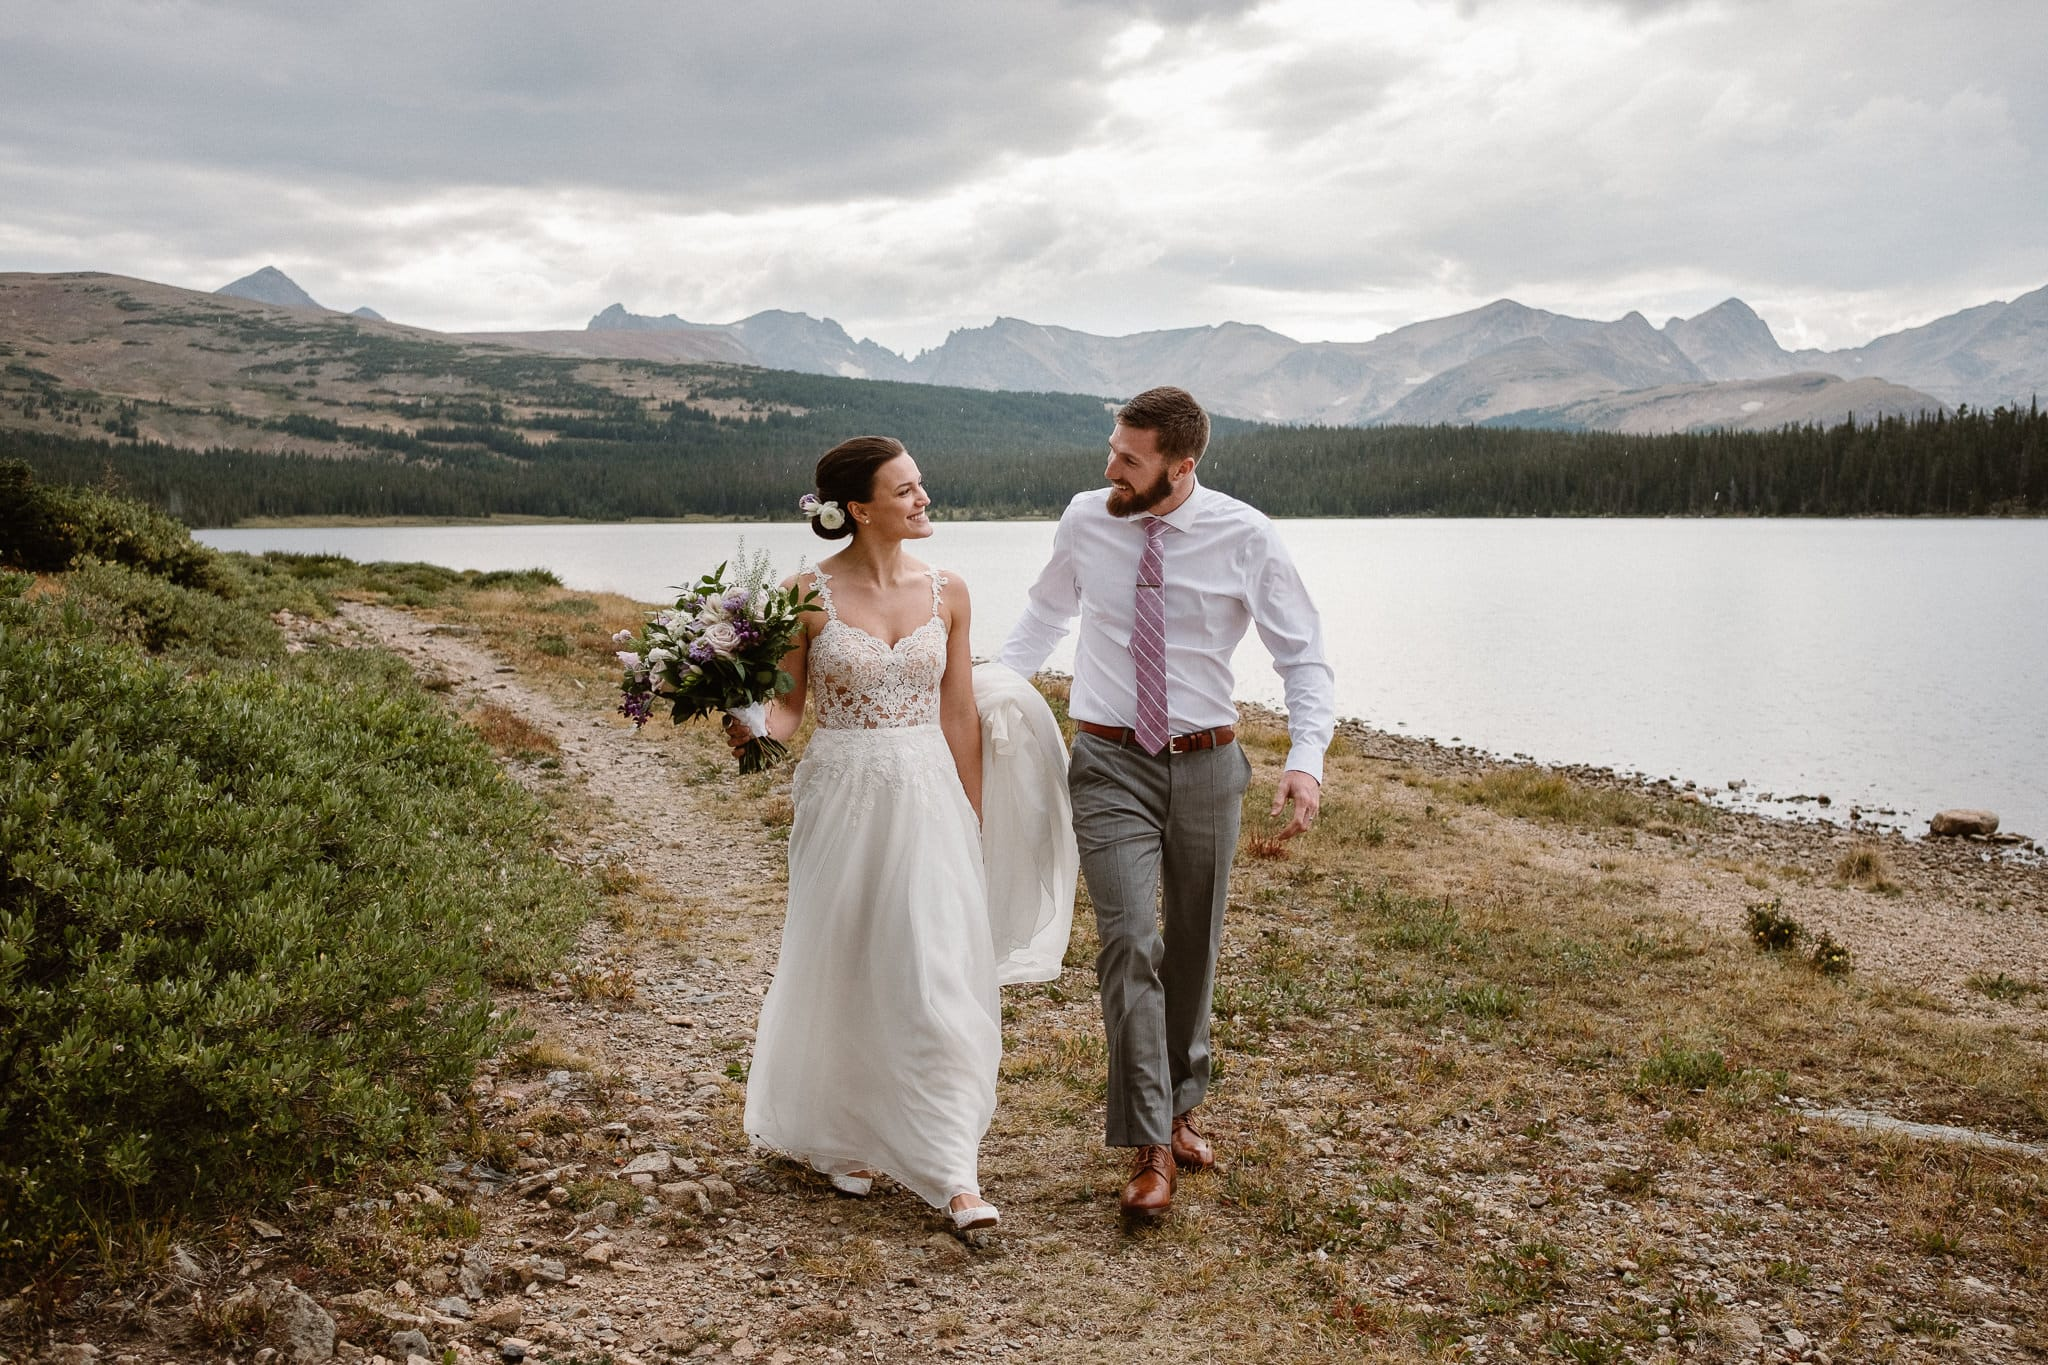 Boulder Colorado mountain elopement photographer, alpine lake adventure wedding